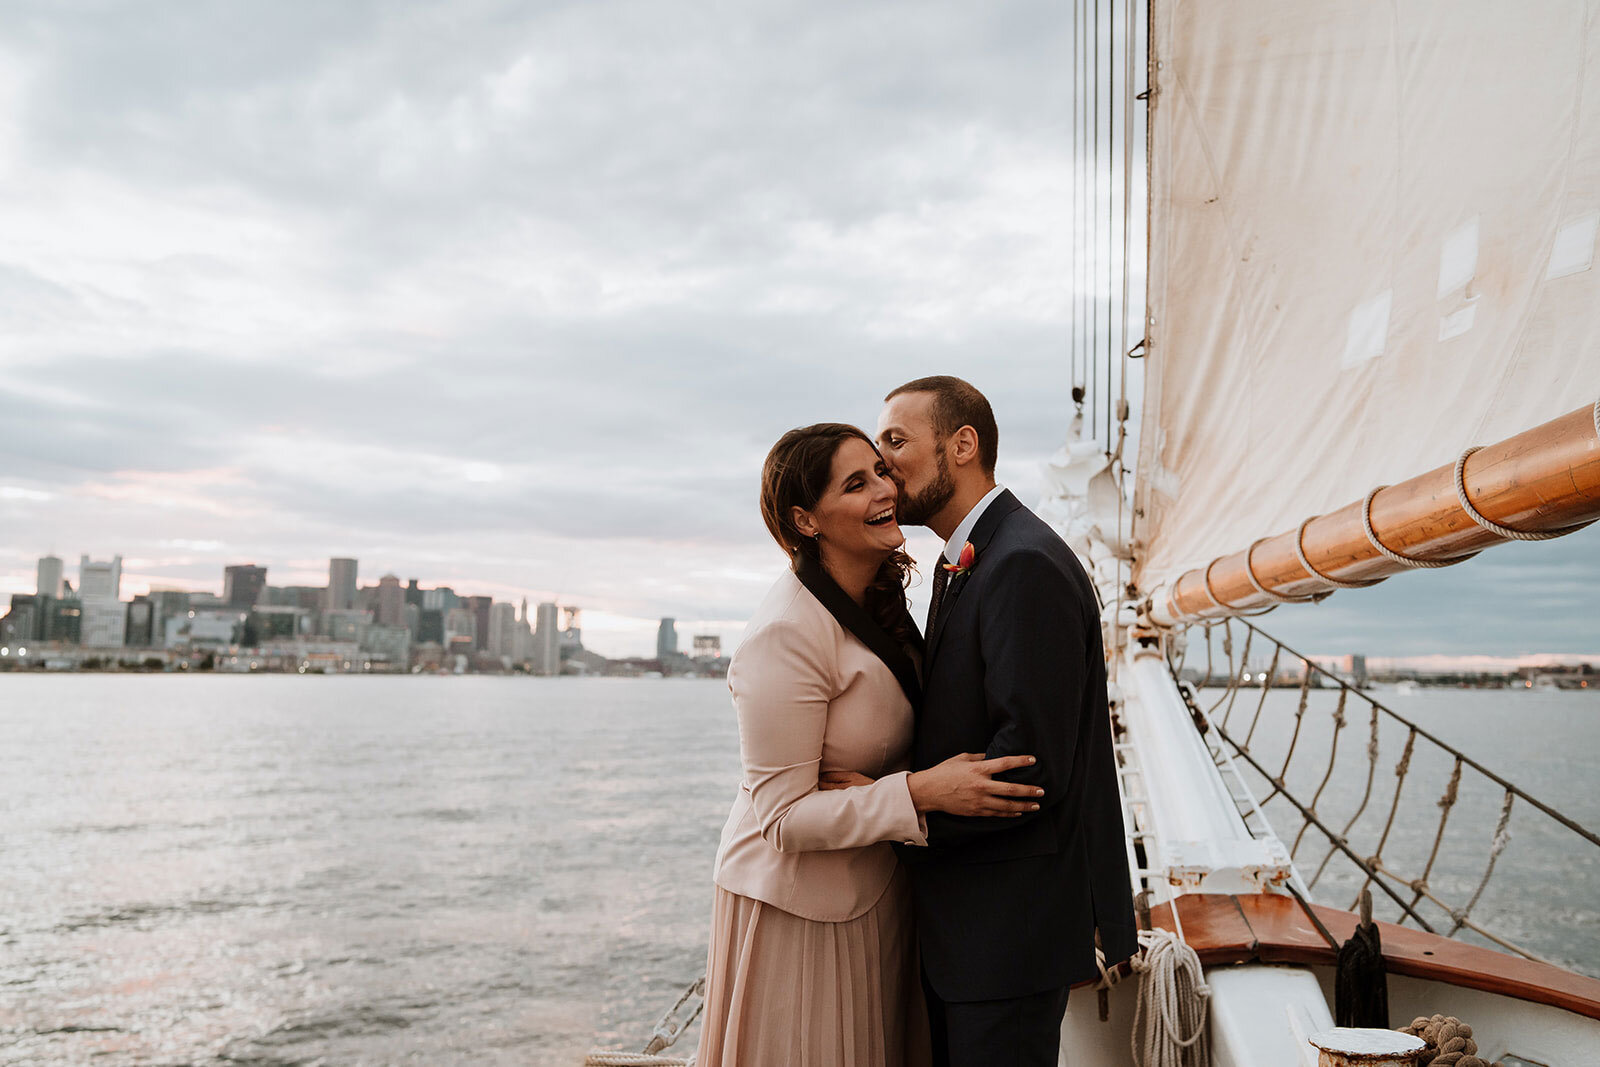 Newlywed couple share a kiss during sailboat wedding Rachel Epperly Film and Photo Portland Oregon